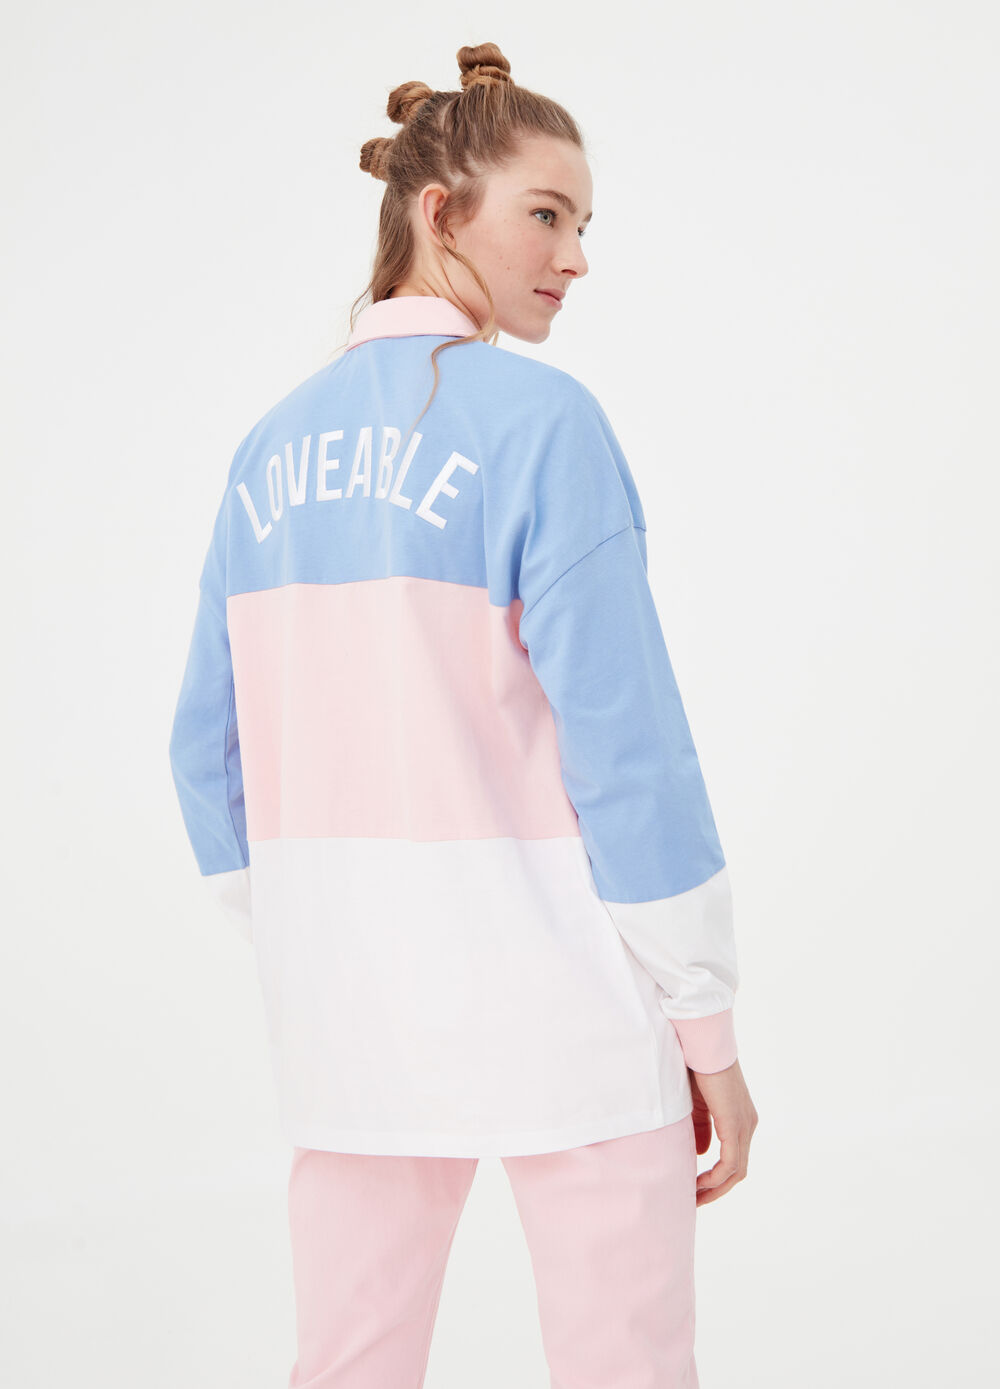 Oversized striped polo shirt with embroidery on the back